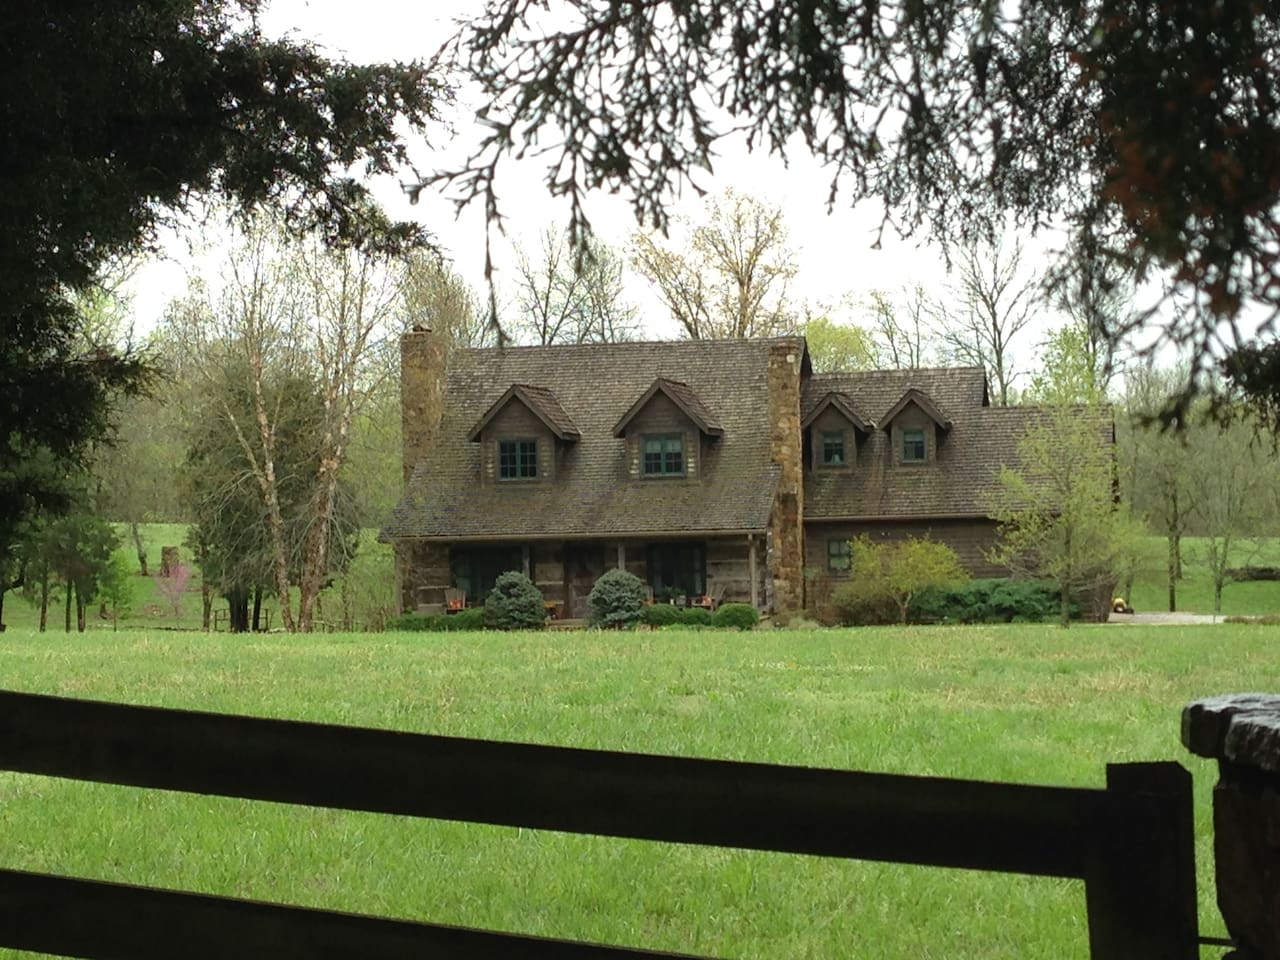 FireFly Farm KY built from reclaimed logs hand hewn in 1790s